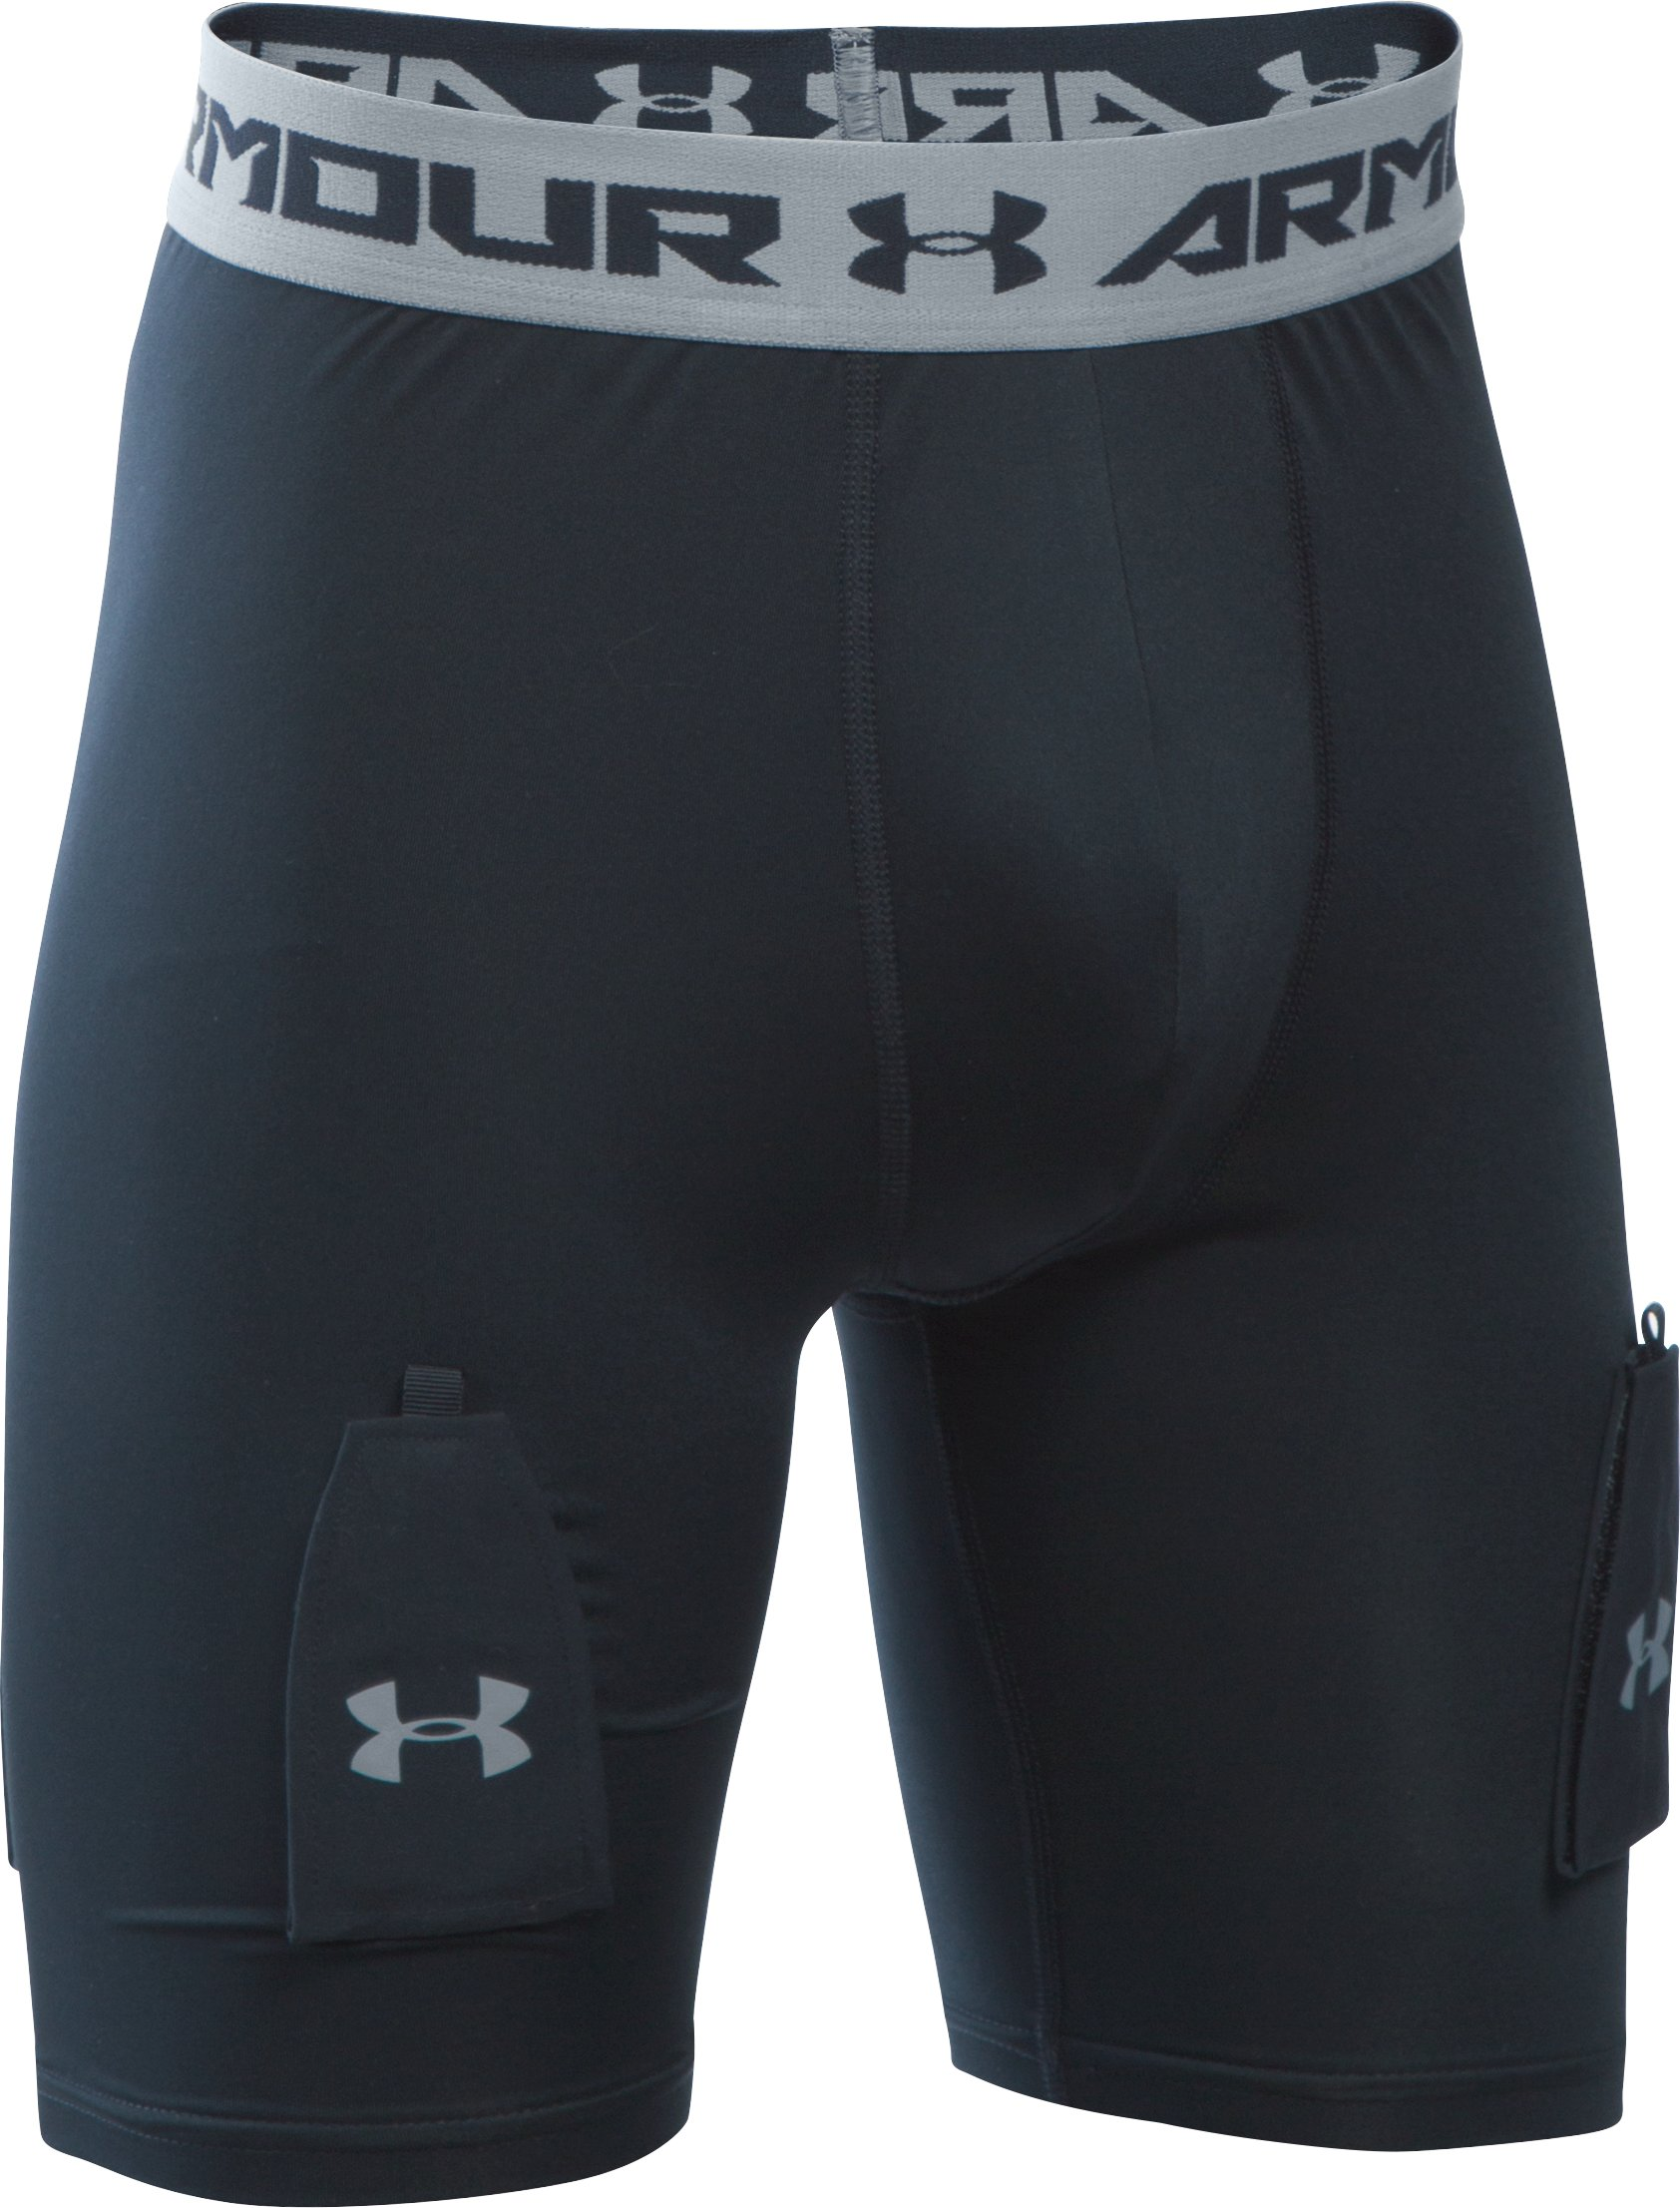 Boys' UA Purestrike Shorts w/ Cup, Black